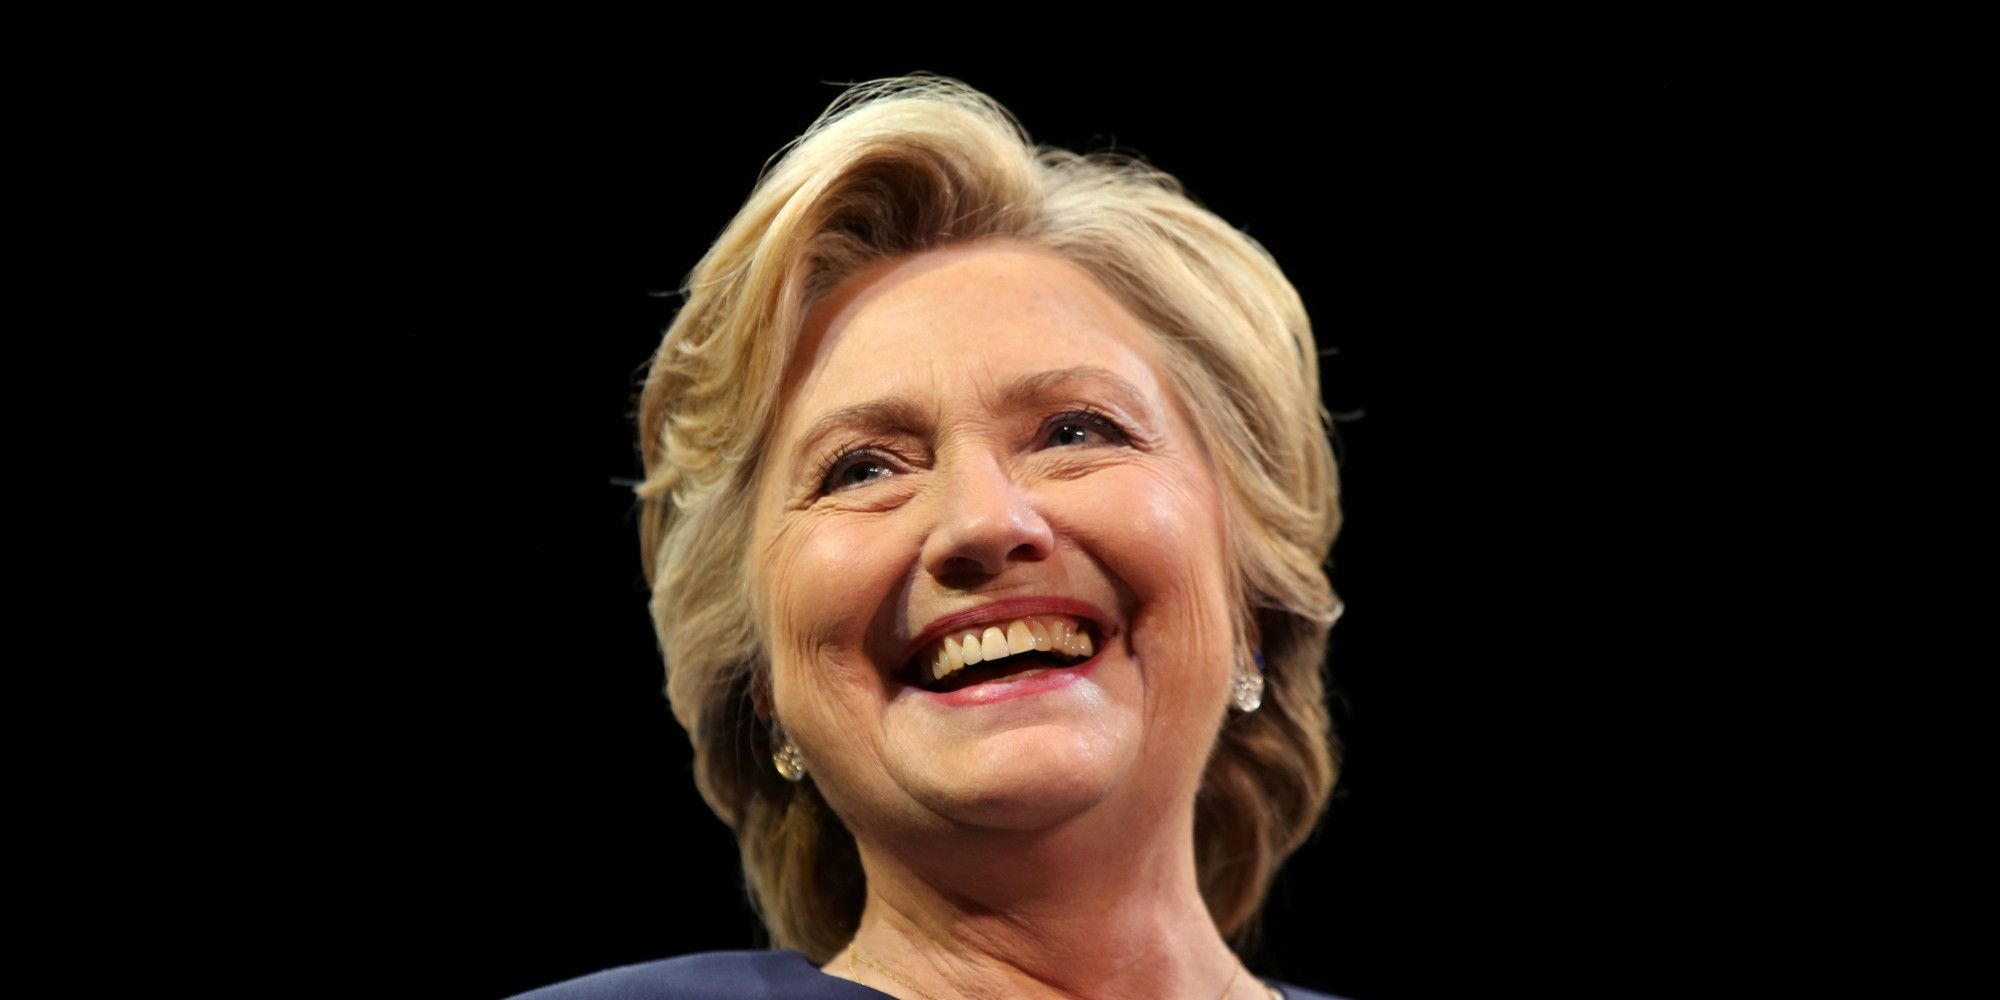 Electoral Math -- 2 Weeks Out, Clinton Is Looking Good